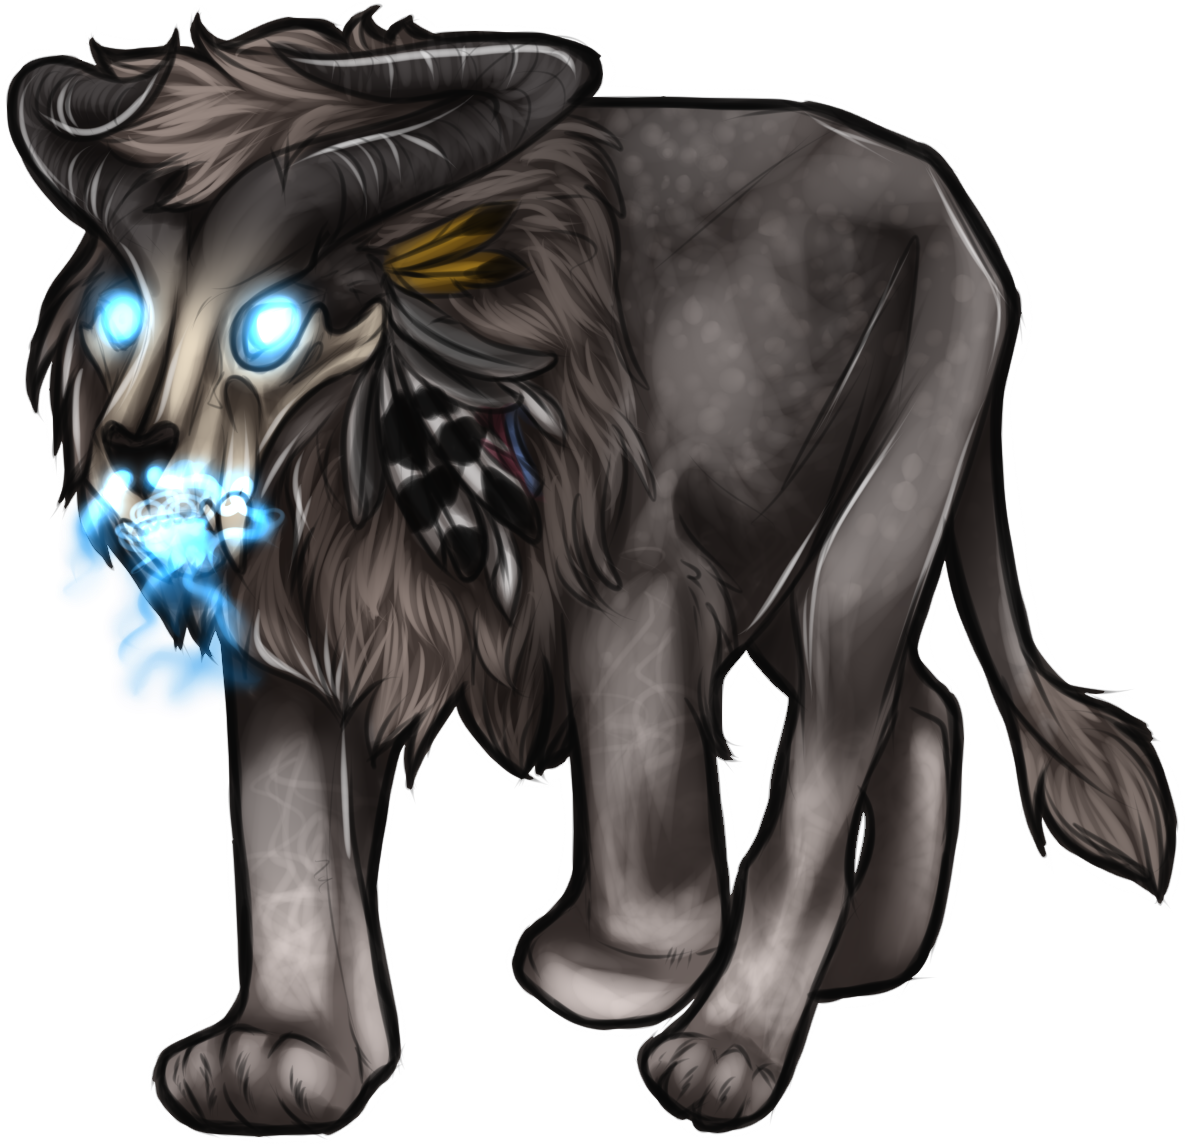 lazy_king_by_iipaw-d96xoym.png